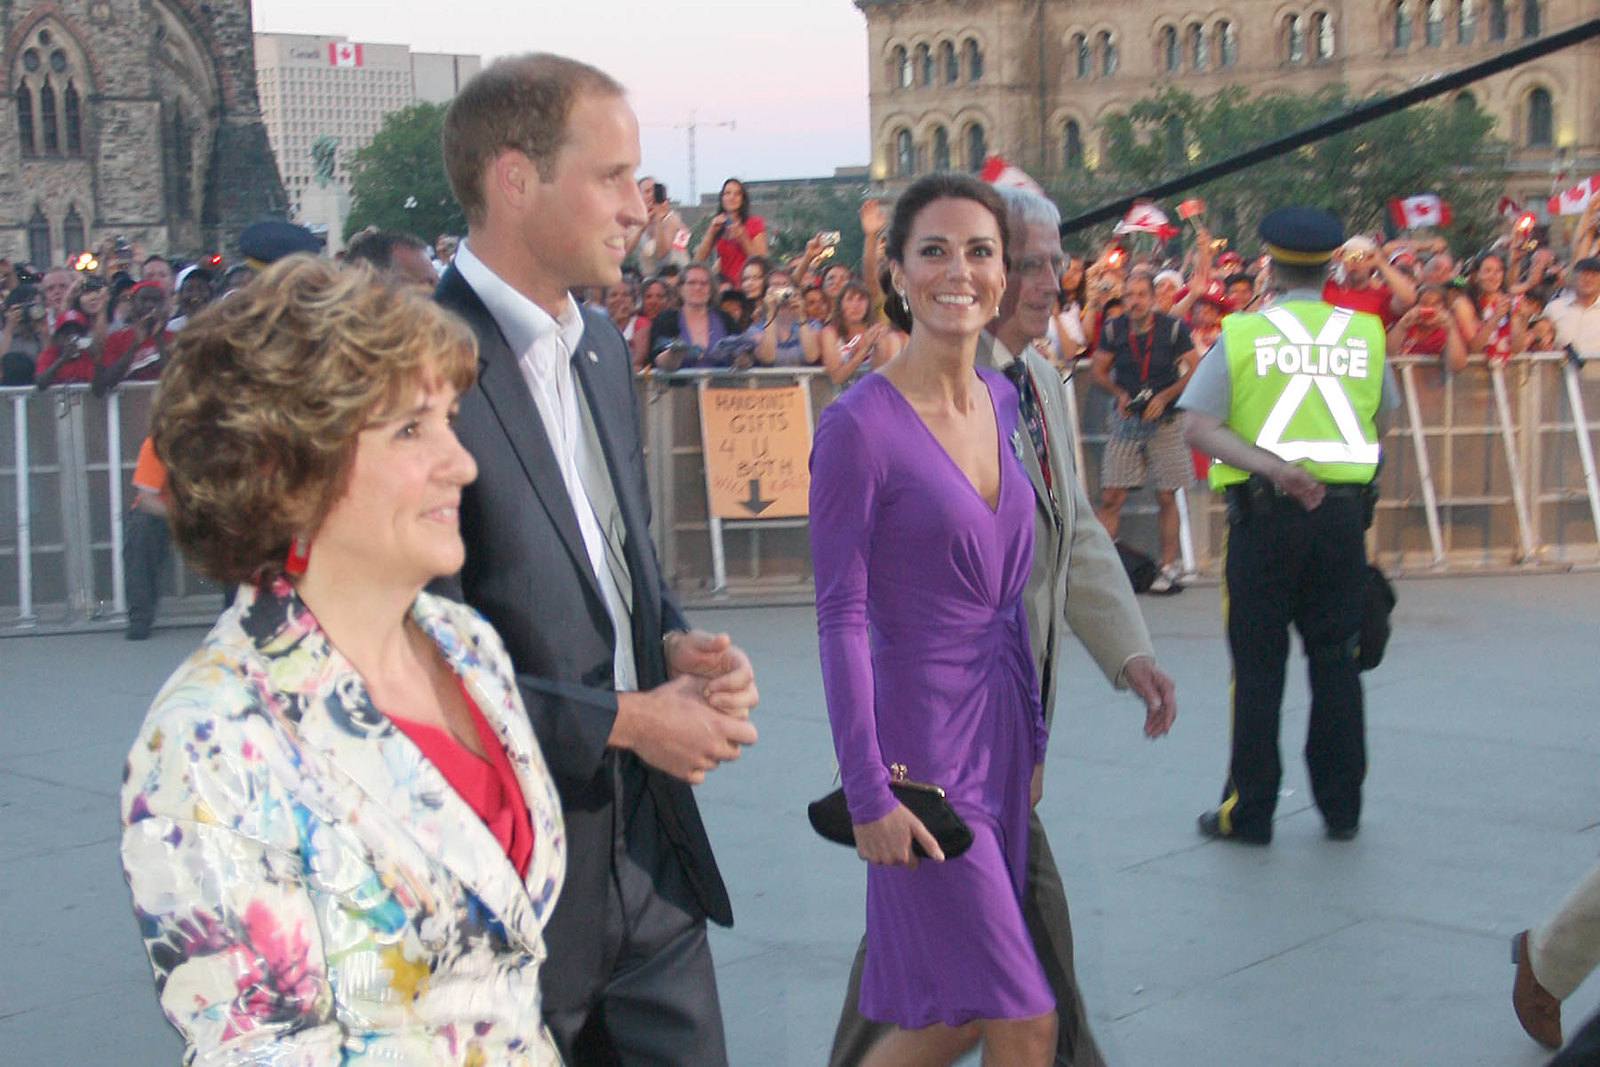 The Duchess of Cambridge in purple Isa dress for Canada Day fireworks during royal tour in 2011